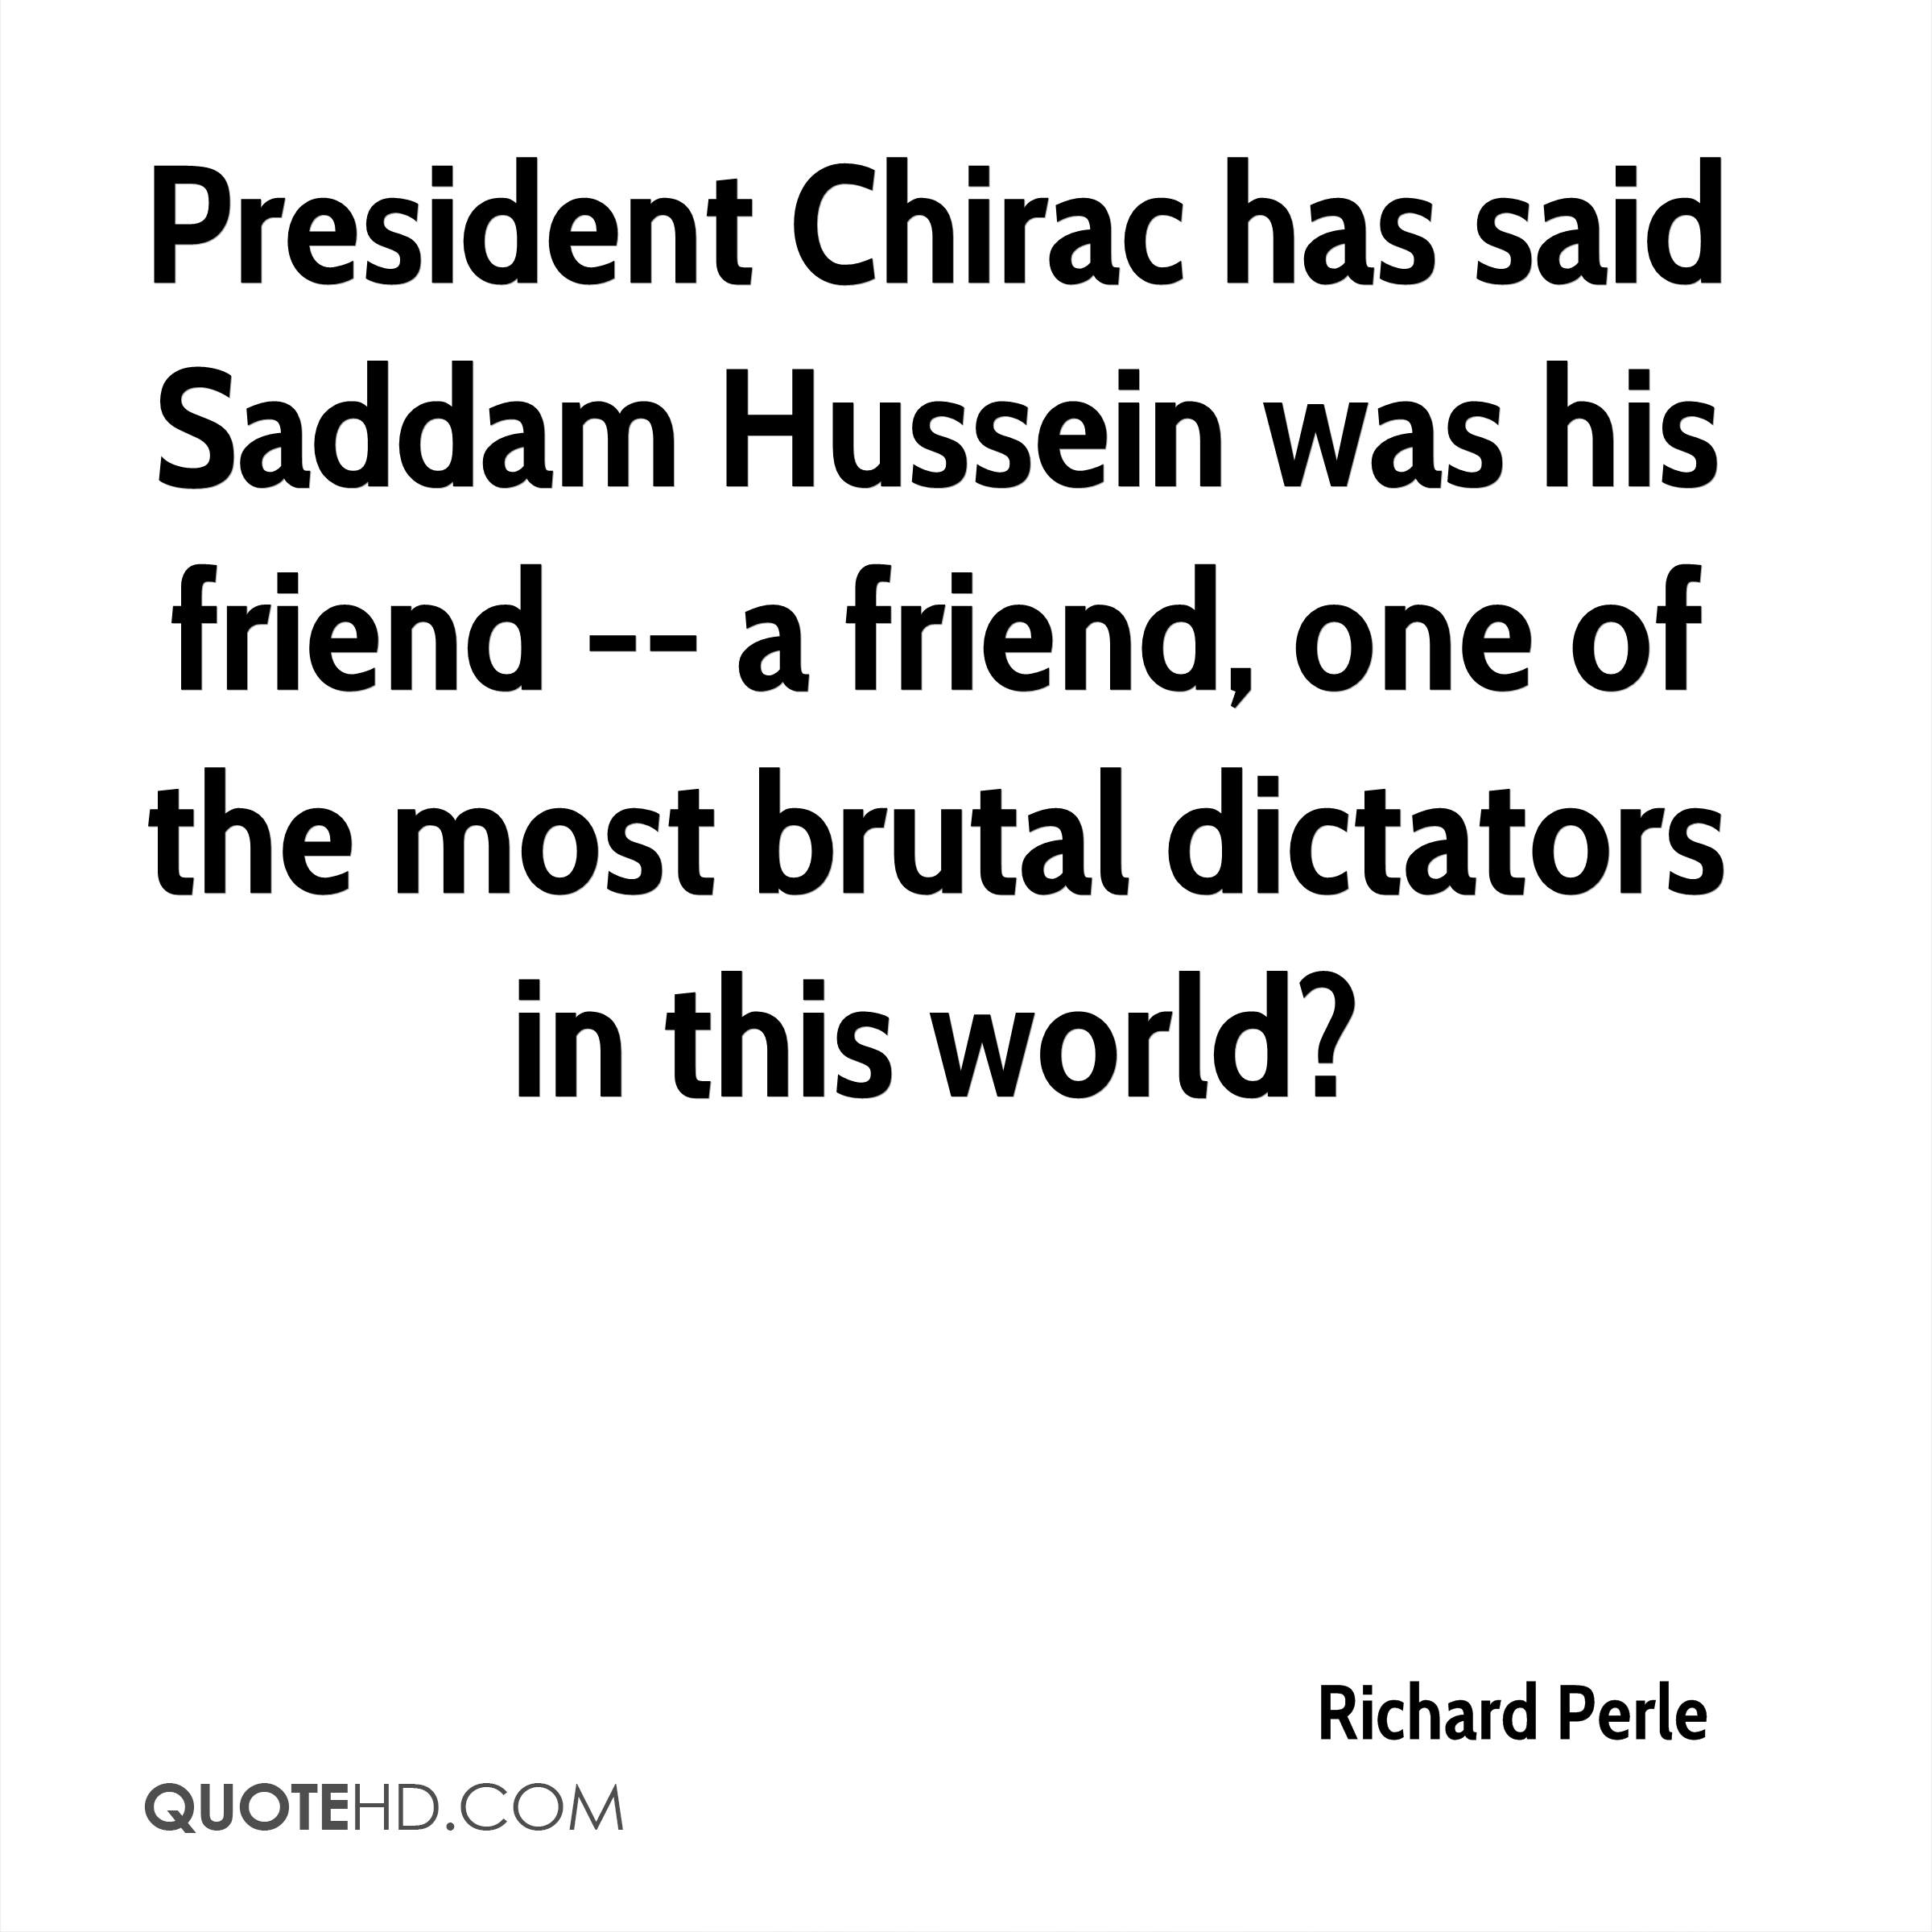 President Chirac has said Saddam Hussein was his friend -- a friend, one of the most brutal dictators in this world?